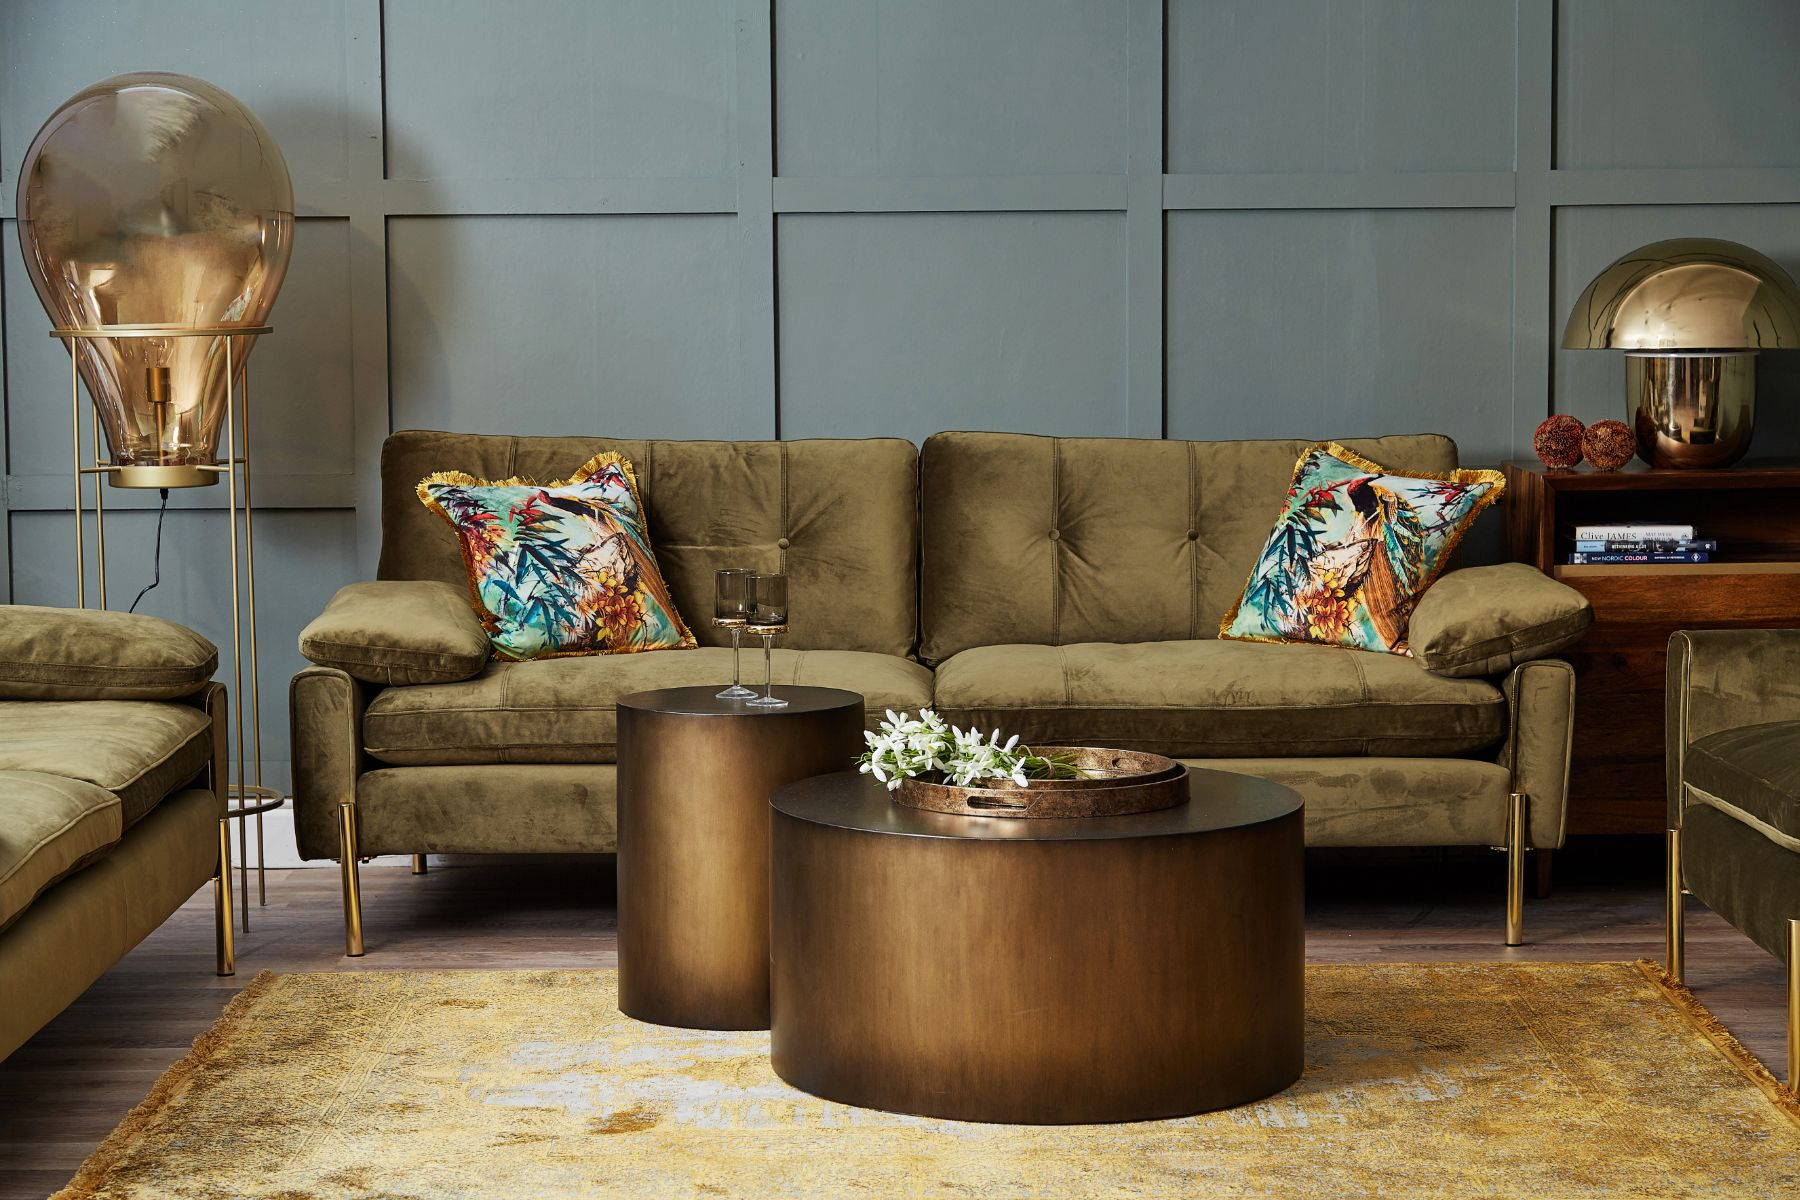 Dudley 3 Seater Sofa